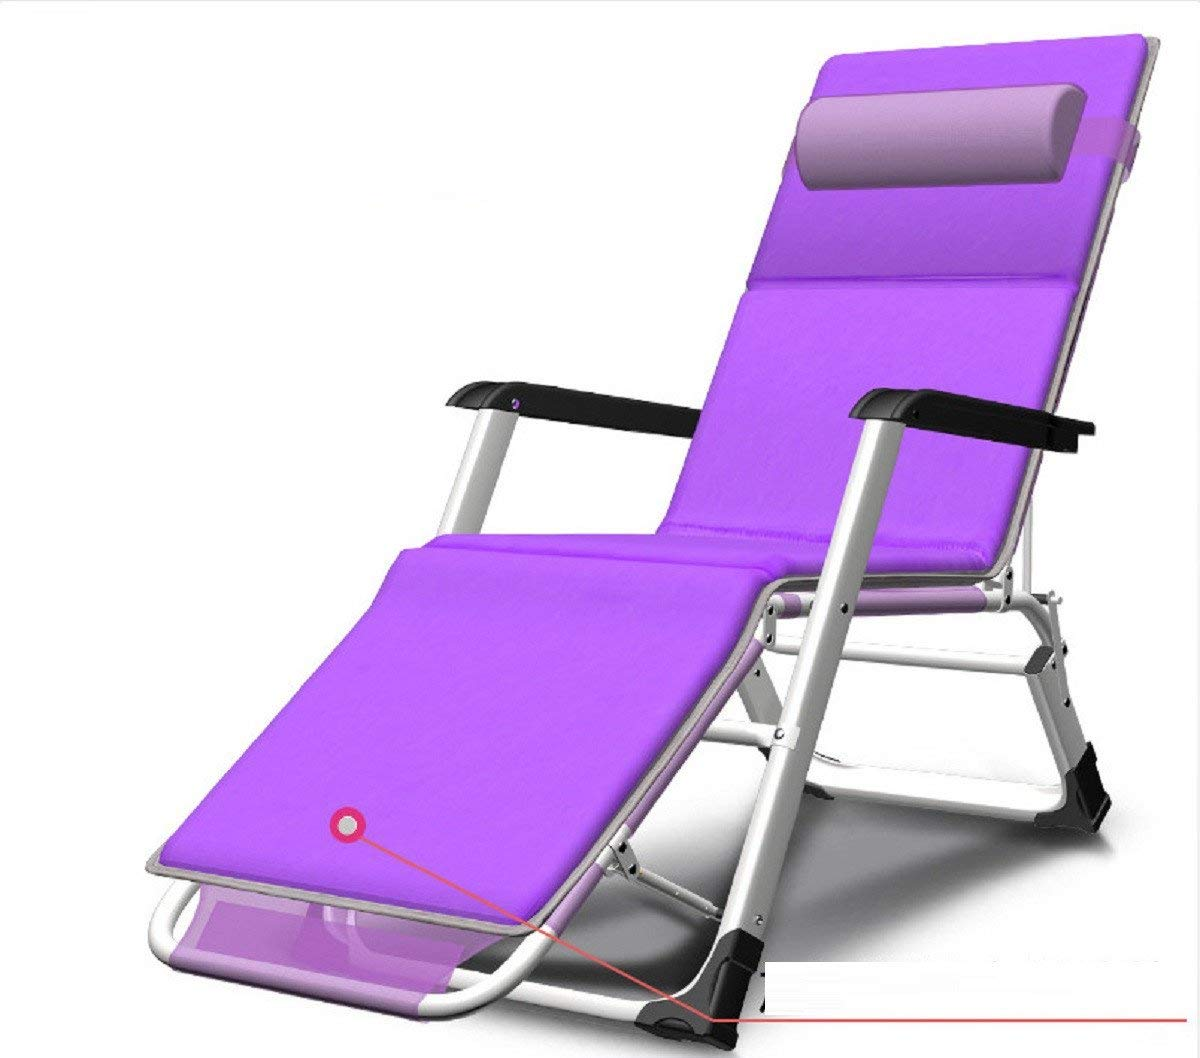 ZLJTYN Zero Gravity Chair Folding Sun Lounger Deck Chairs, Lunch Break, Nap Chair, Office Bed, Armchair, Lazy, Portable, Beach, Home Multifunction, A, 1 PACK